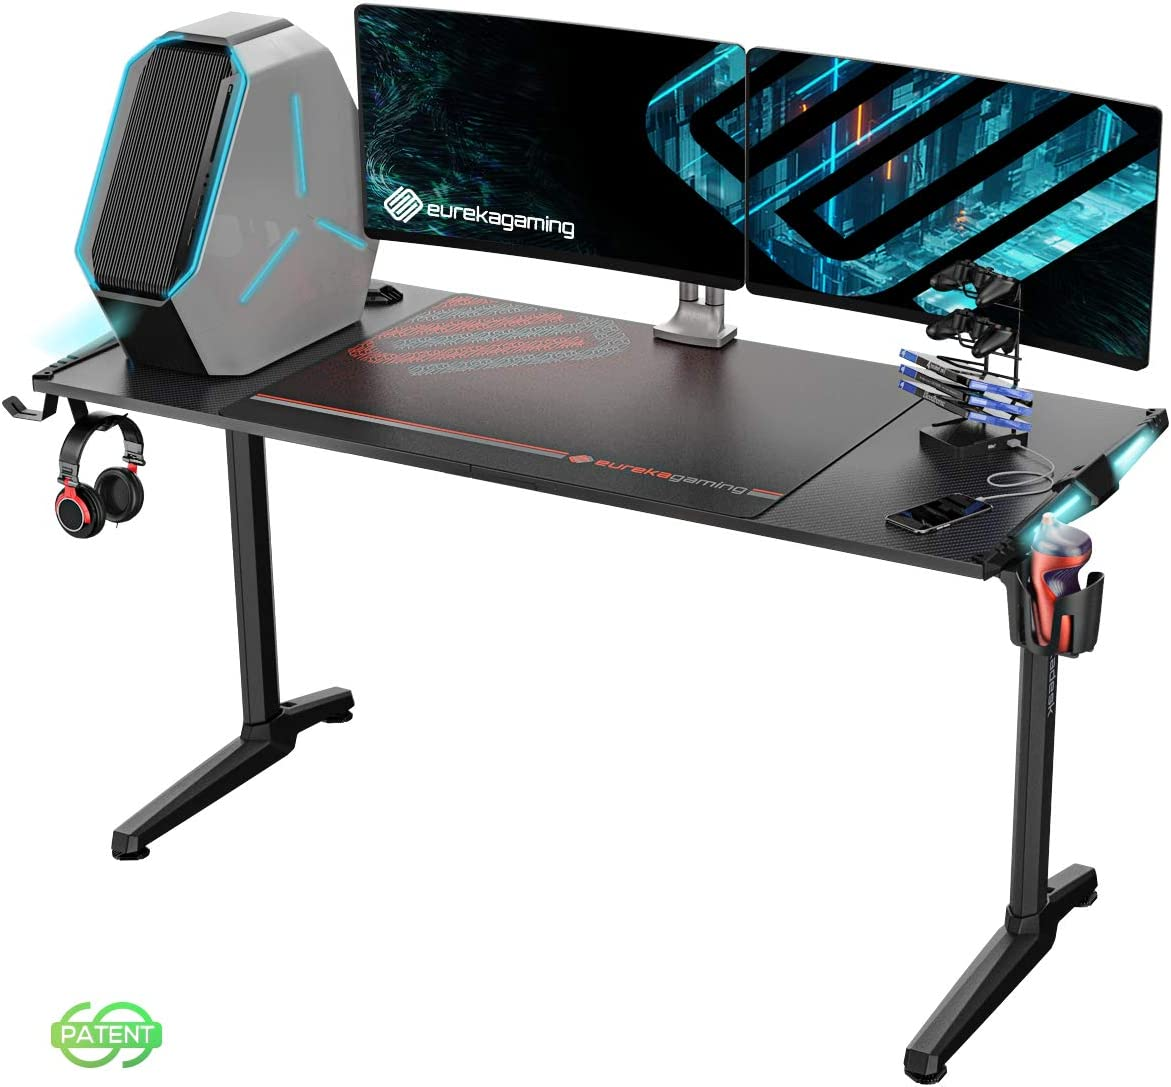 EUREKA ERGONOMIC Gaming Computer Desk 55 Home Office Gaming PC Tables New Polygon Legs Design with RGB LED Lights, Colonel Series GIP-55B, Black